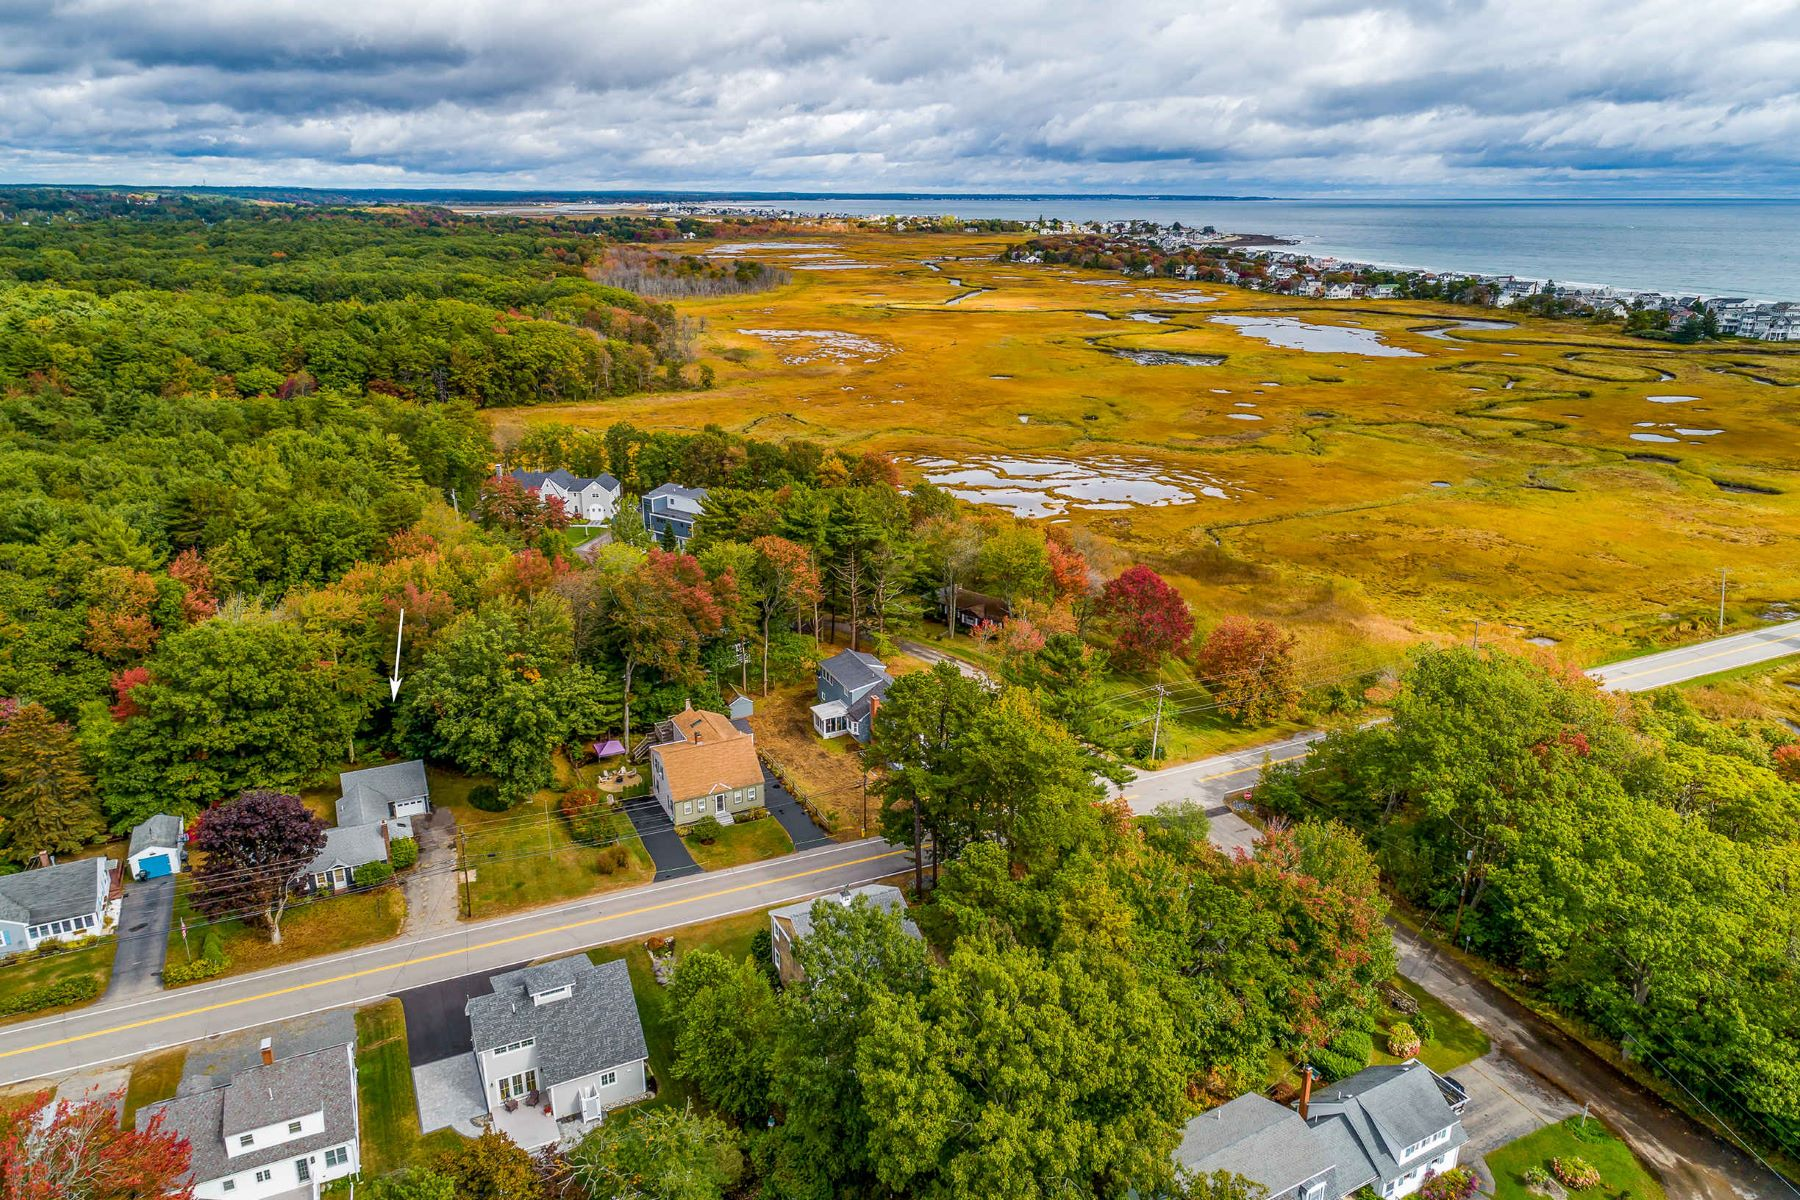 Single Family Homes for Sale at 3 Bedroom Ranch With Extra Building Lot in Wells 128 Bourne Avenue, Wells, Maine 04090 United States